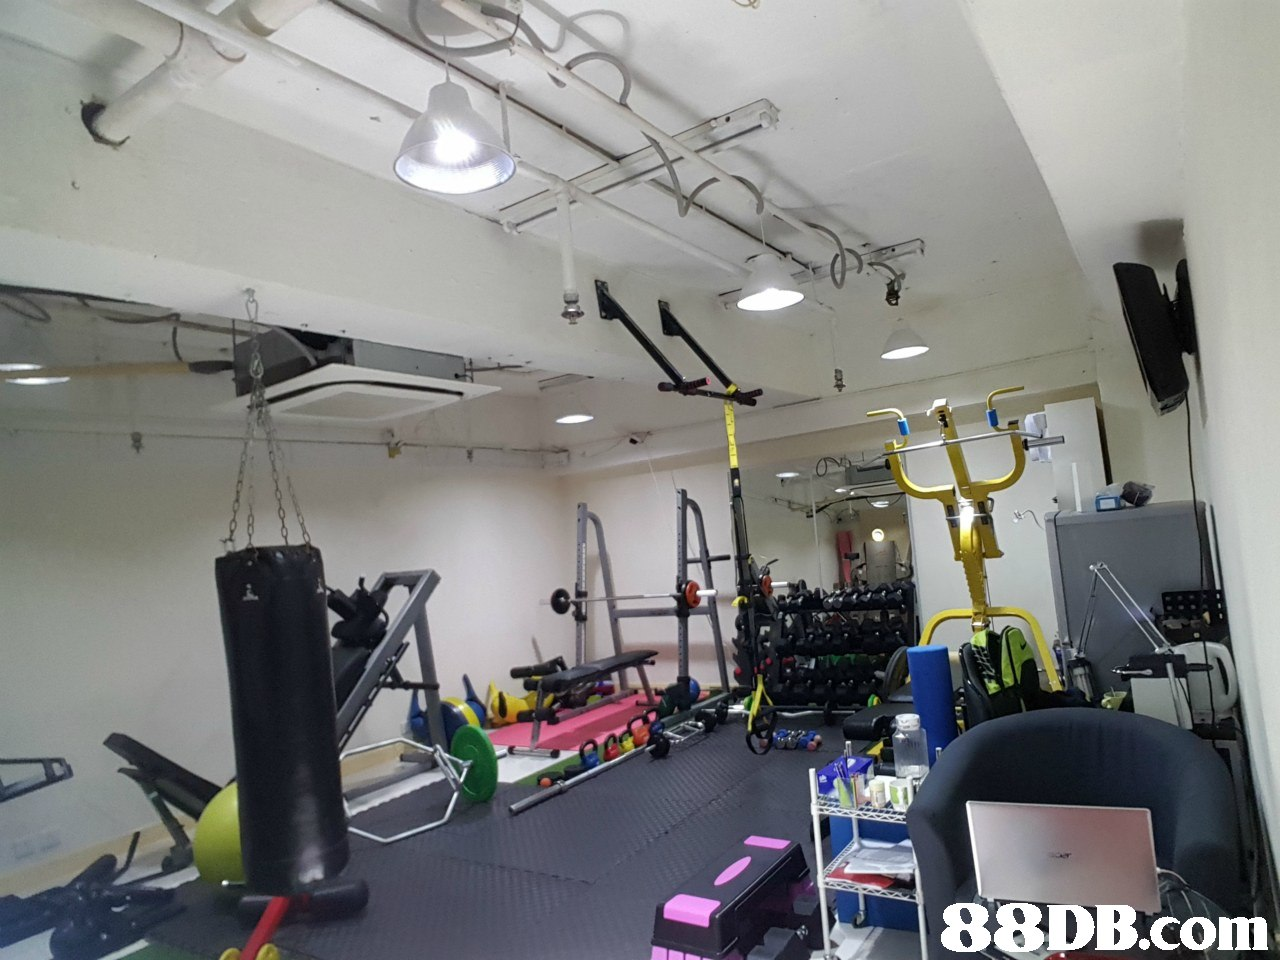 Gym,Room,Sport venue,Physical fitness,Exercise equipment